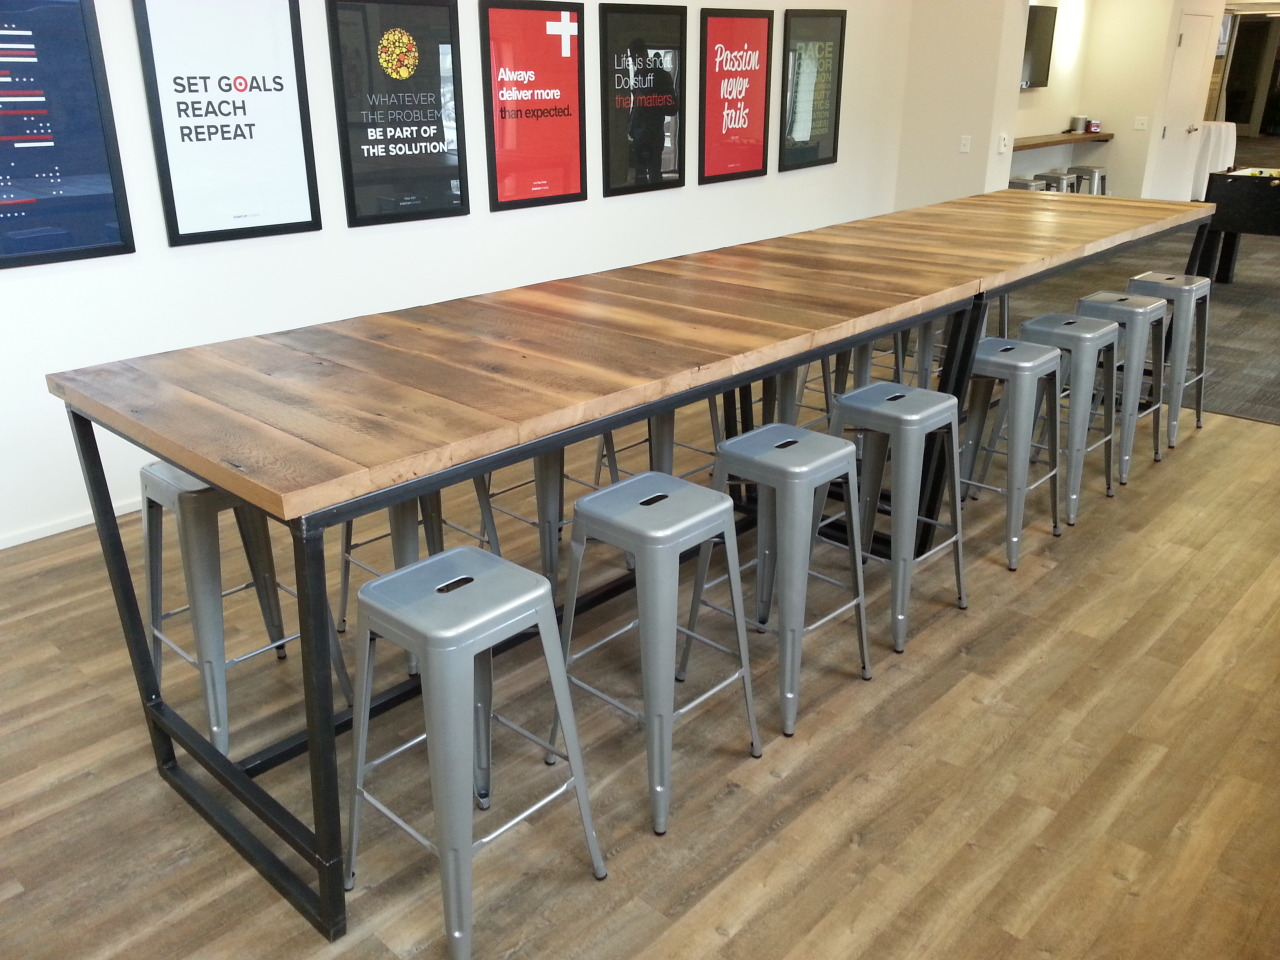 Grande Table Bar Re Dwell Custom Crafted Furniture Conference Room